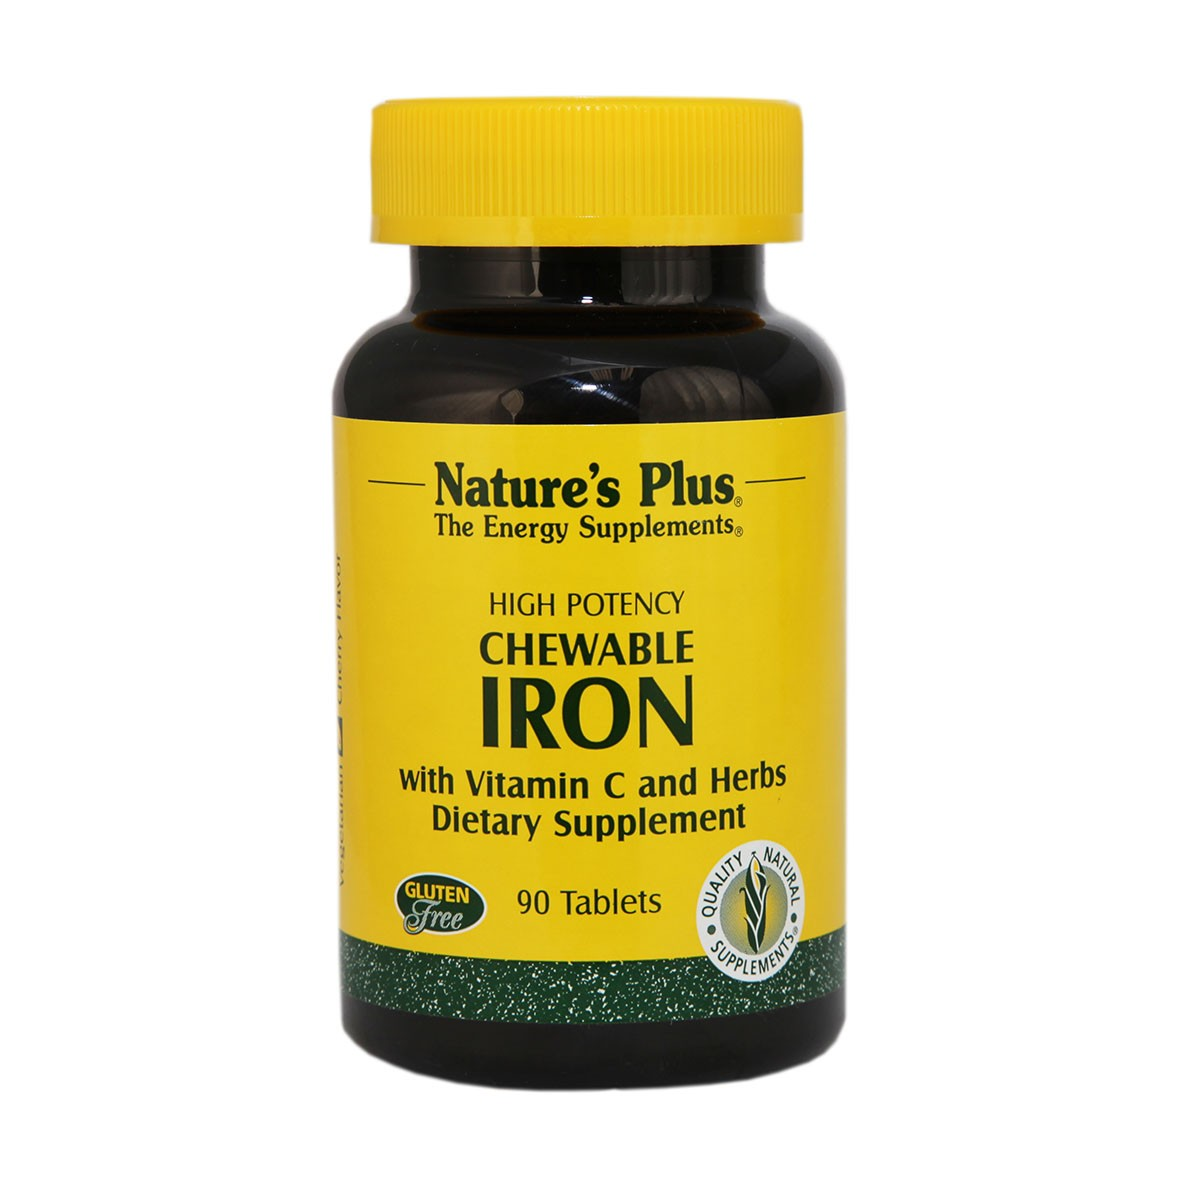 Natures Plus Chewable Iron with Vitamin C and Herbs